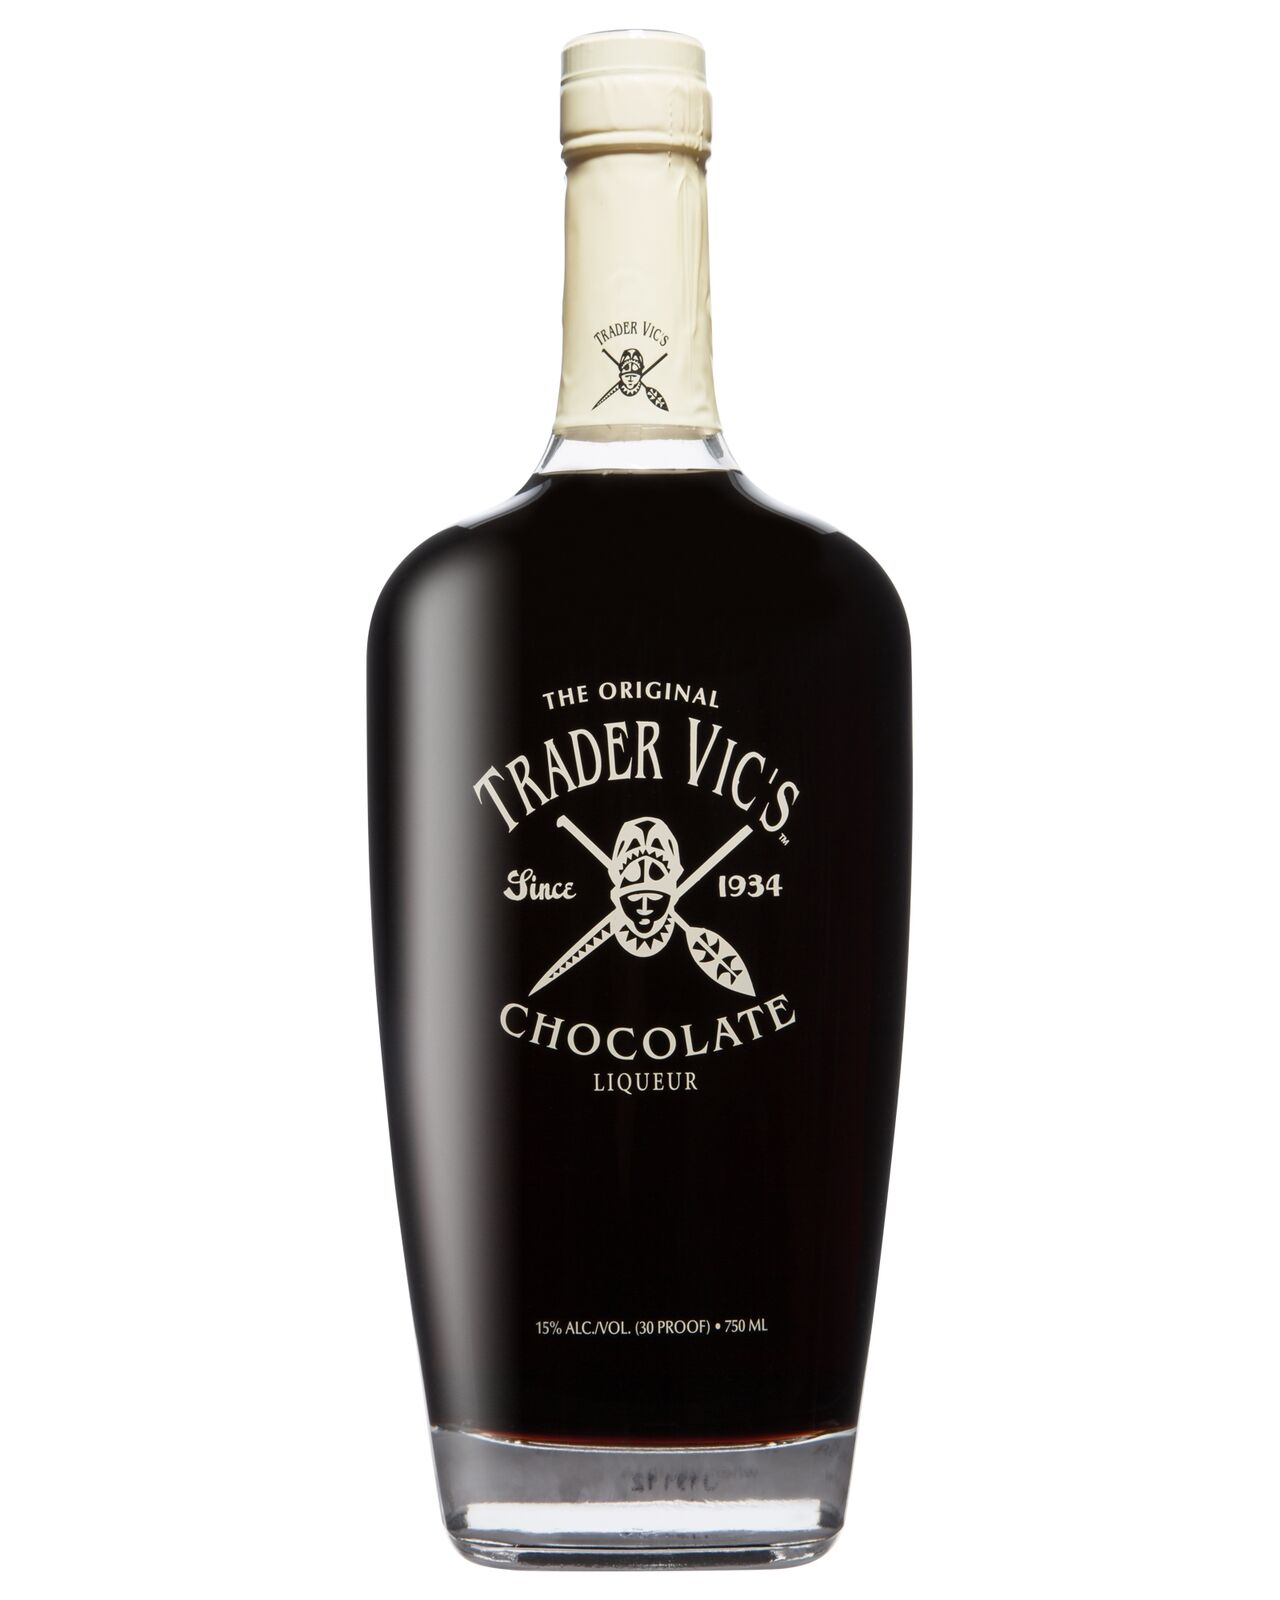 Trader Vic's Chocolate Liquer 750mL bottle Chocolate Liqueurs